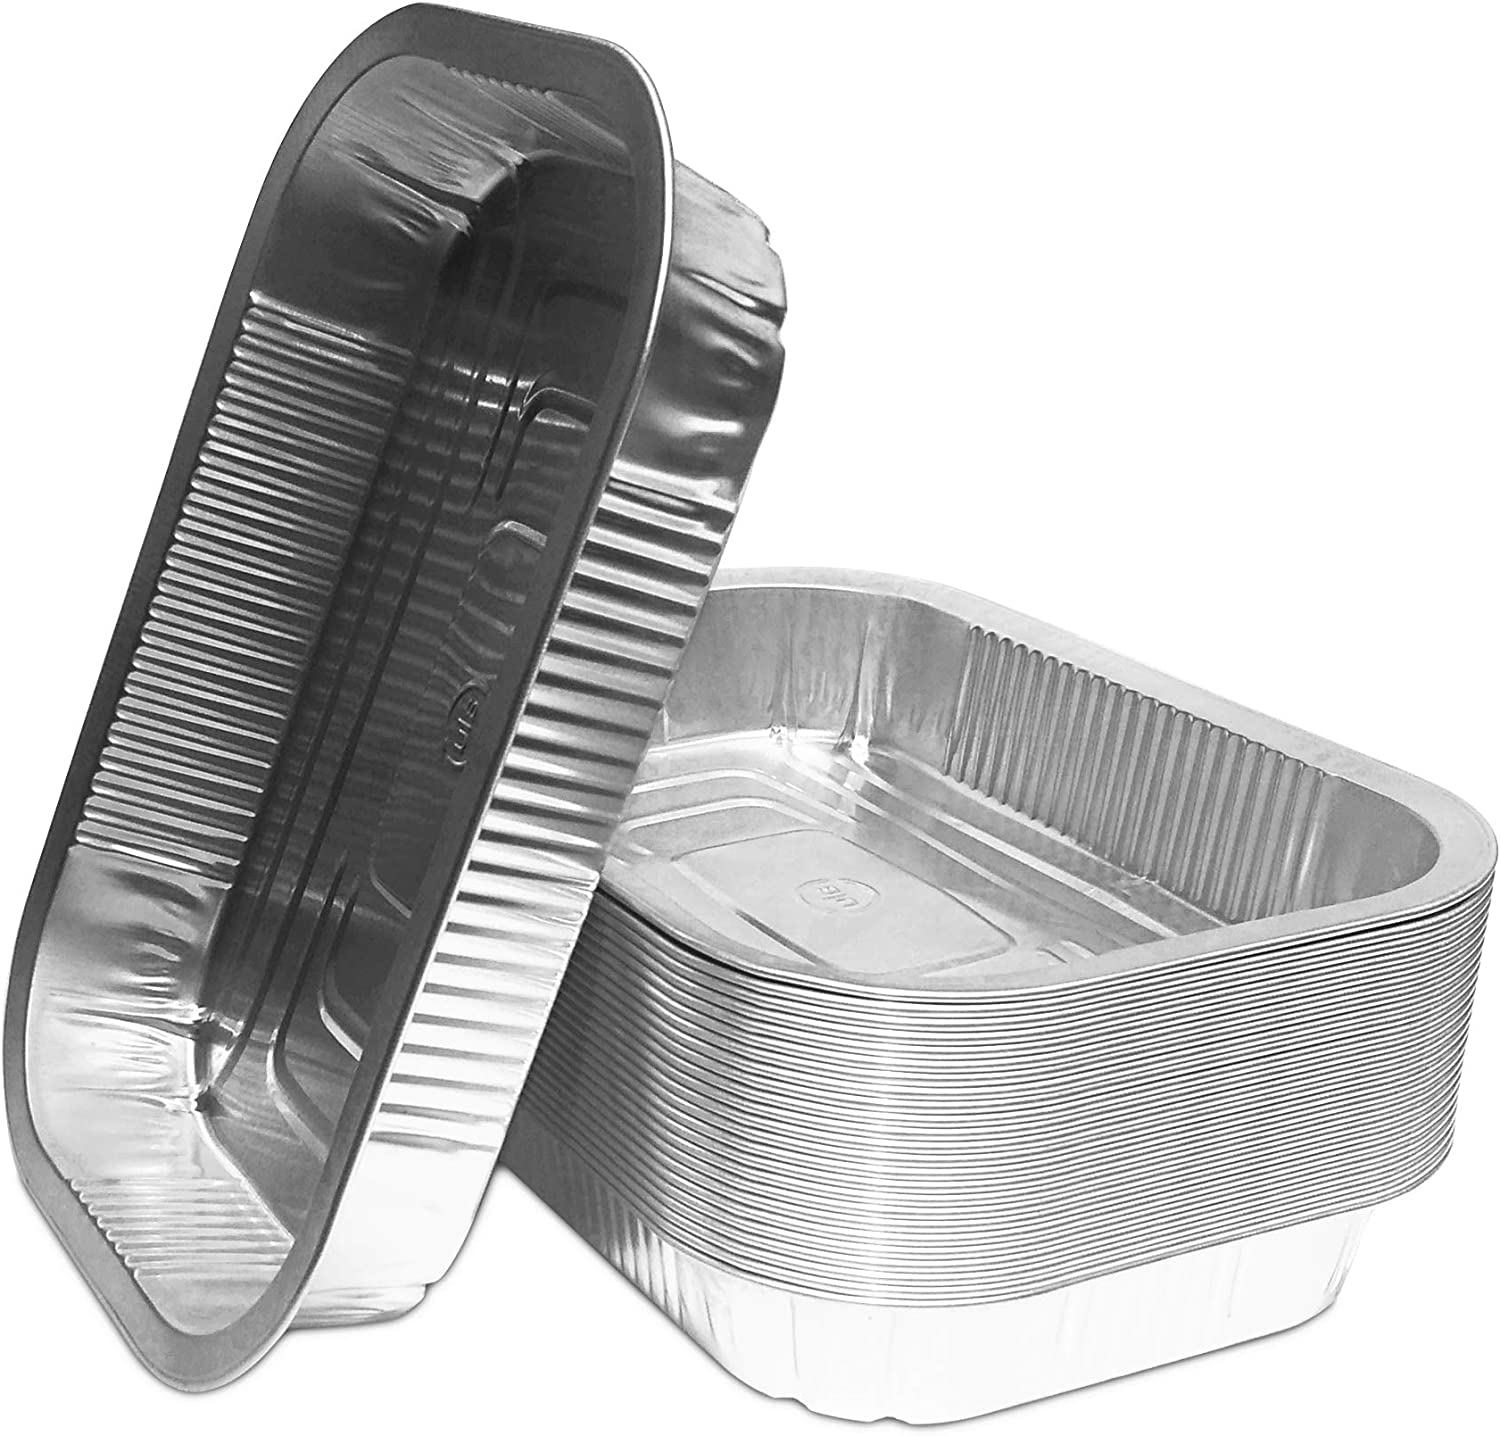 Aluminium tray for barbecue grill perfectly fitting for your Weber BBQ 100 high quality trays drip pan